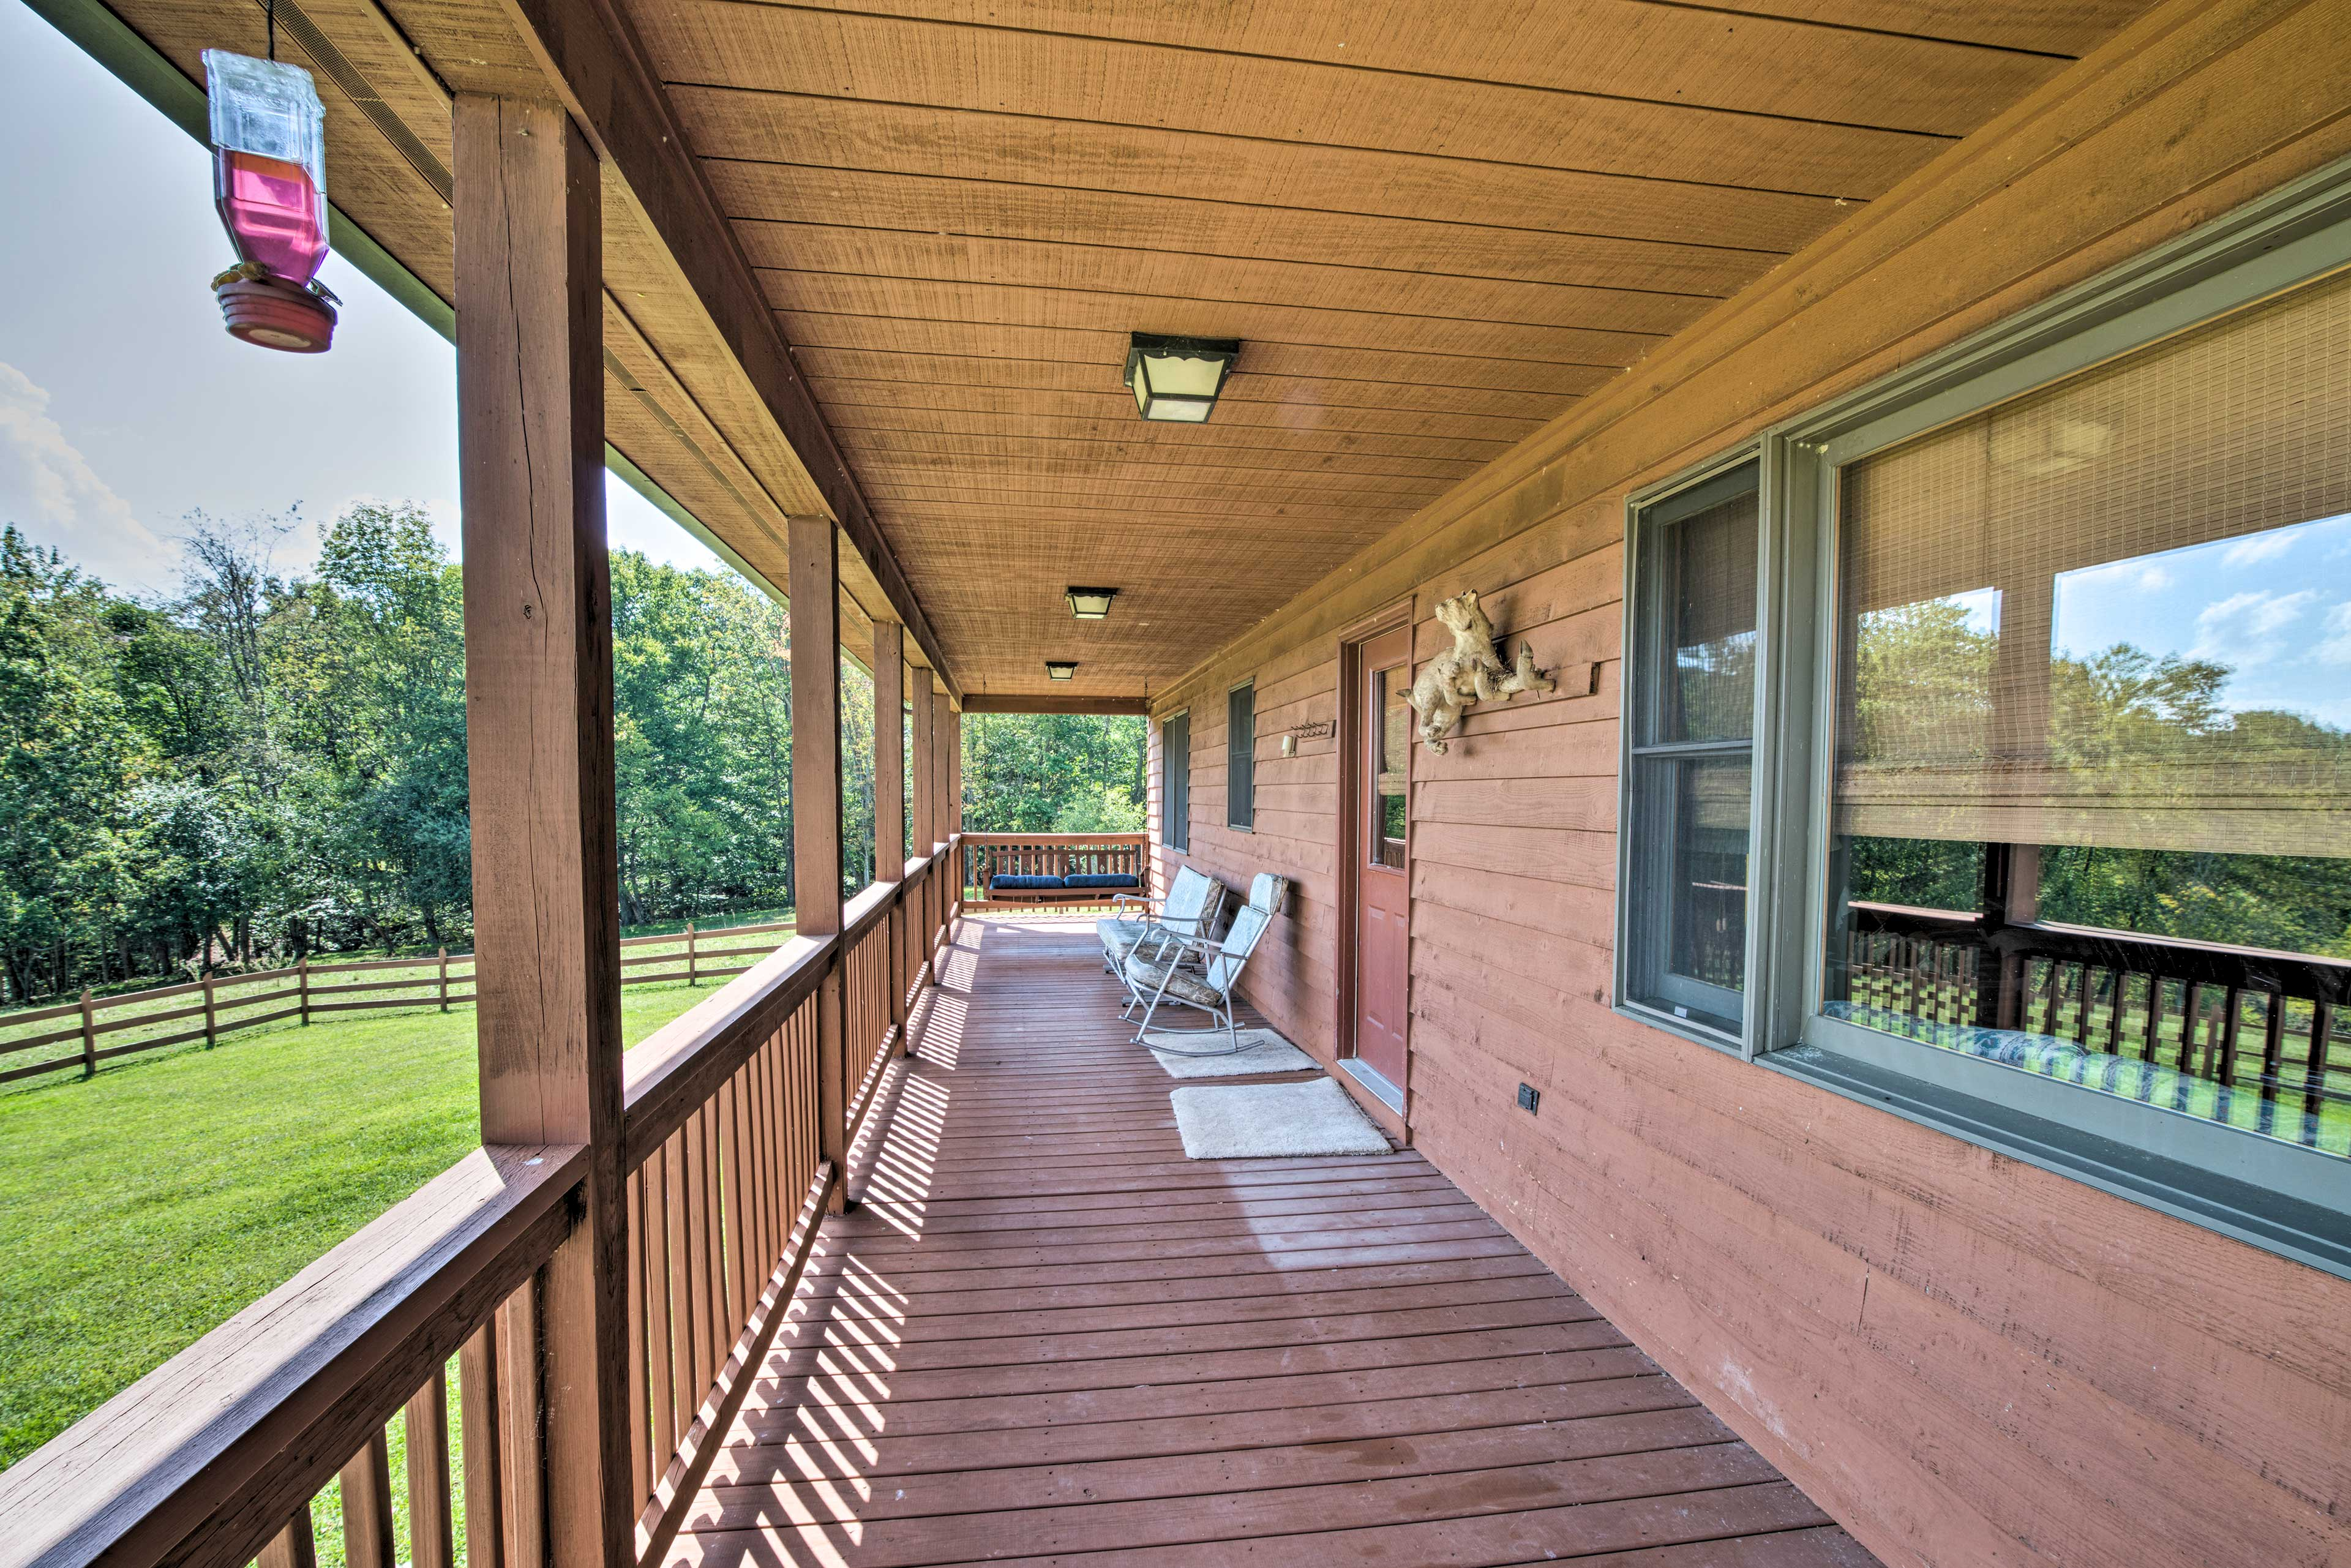 Relax on the porch upon your arrival.